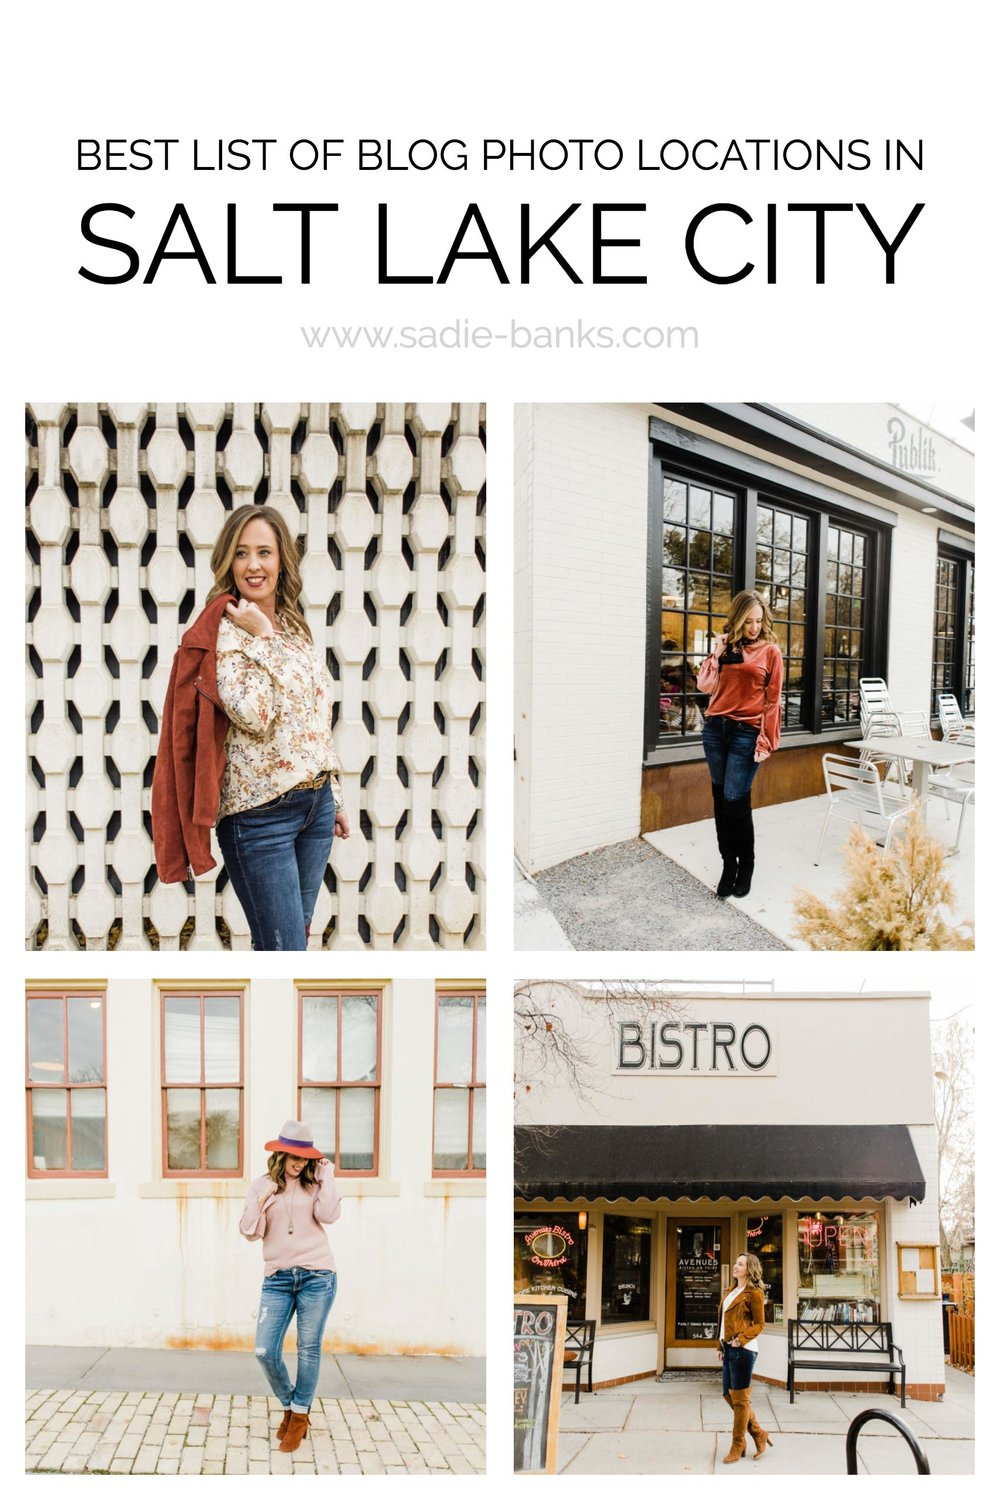 Best Photo Locations in Salt Lake City | Blog Photo Ideas | Style Blogger | Sadie Banks Photography